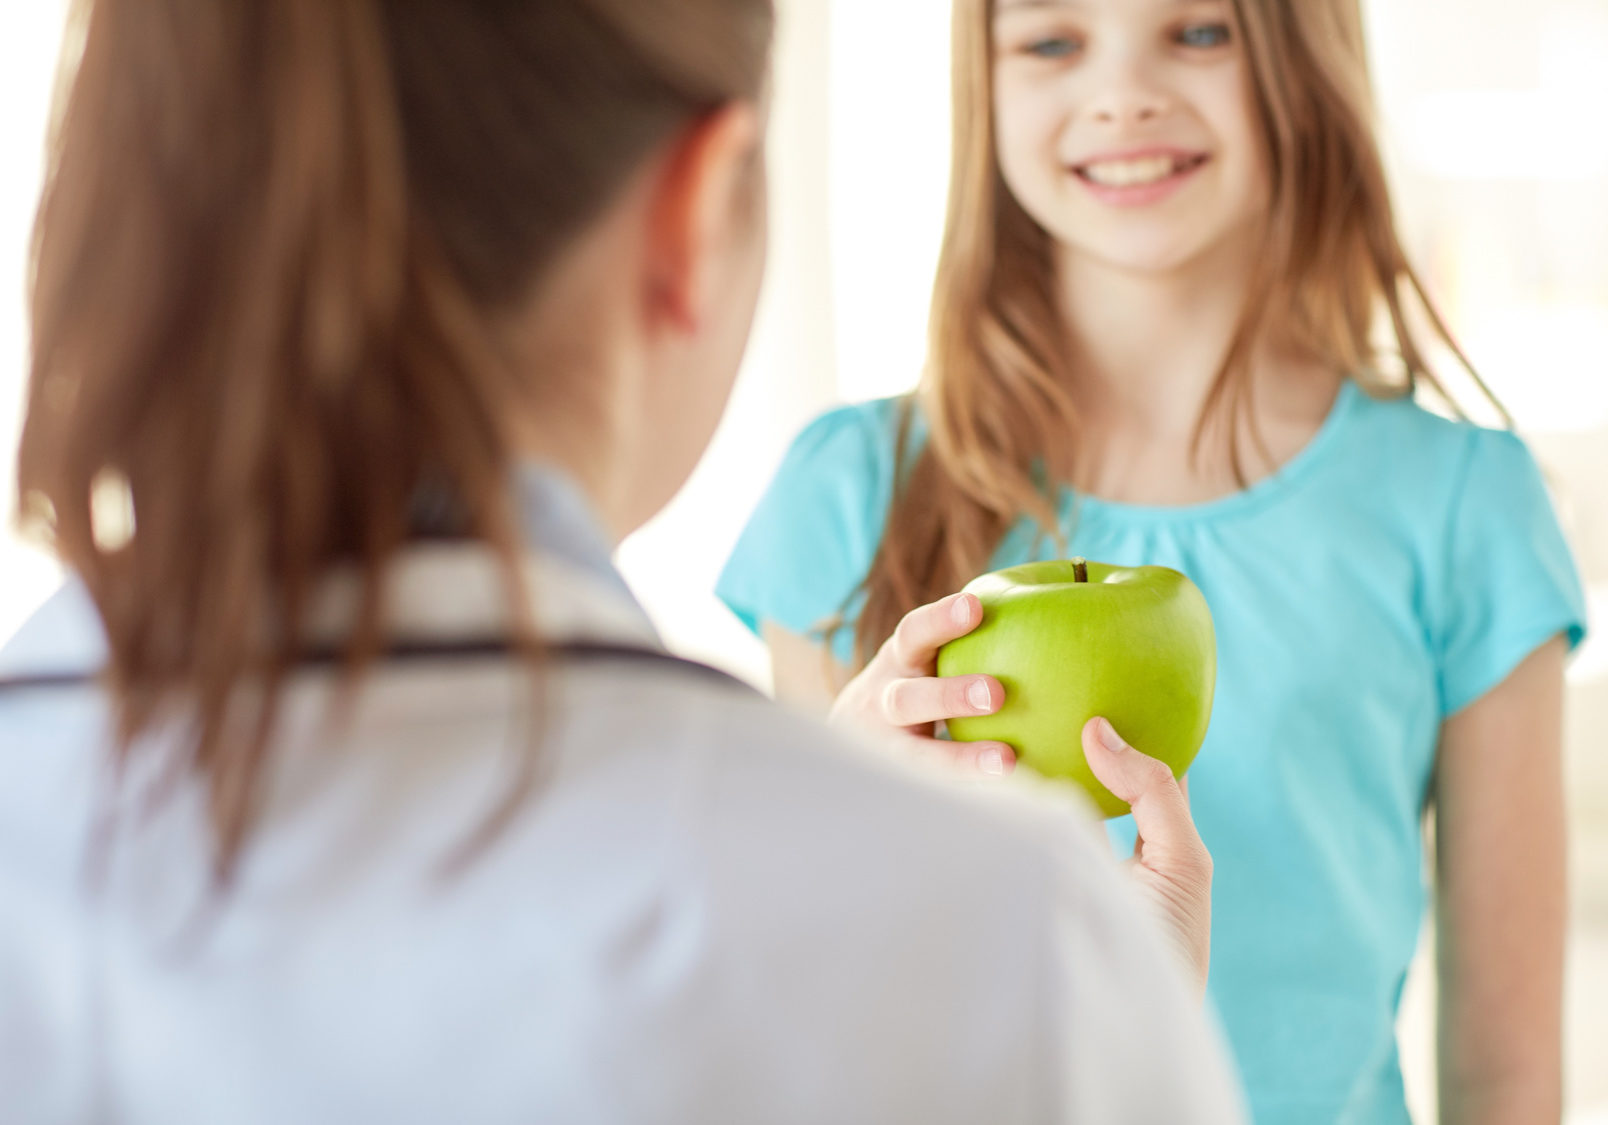 health care, healty eating, people, children and medicine concept - close up of doctor or stomatologist giving green apple to happy girl at hospital